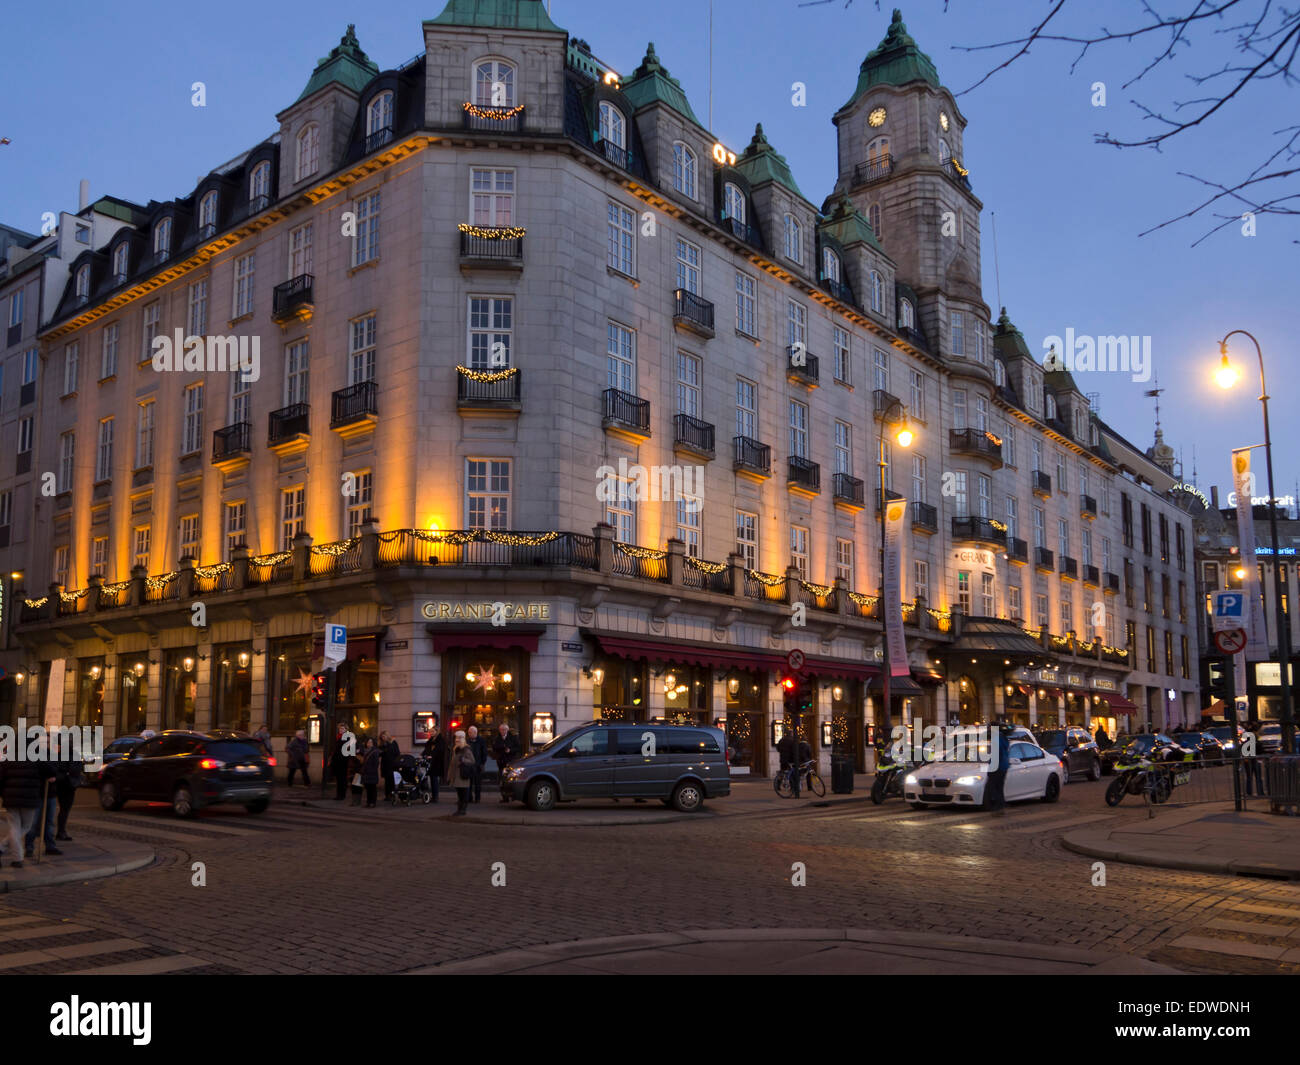 Grand Hotel centrally placed upscale hotel in Karl Johans gate Oslo Norway, accommodation for distinguished visitors Stock Photo